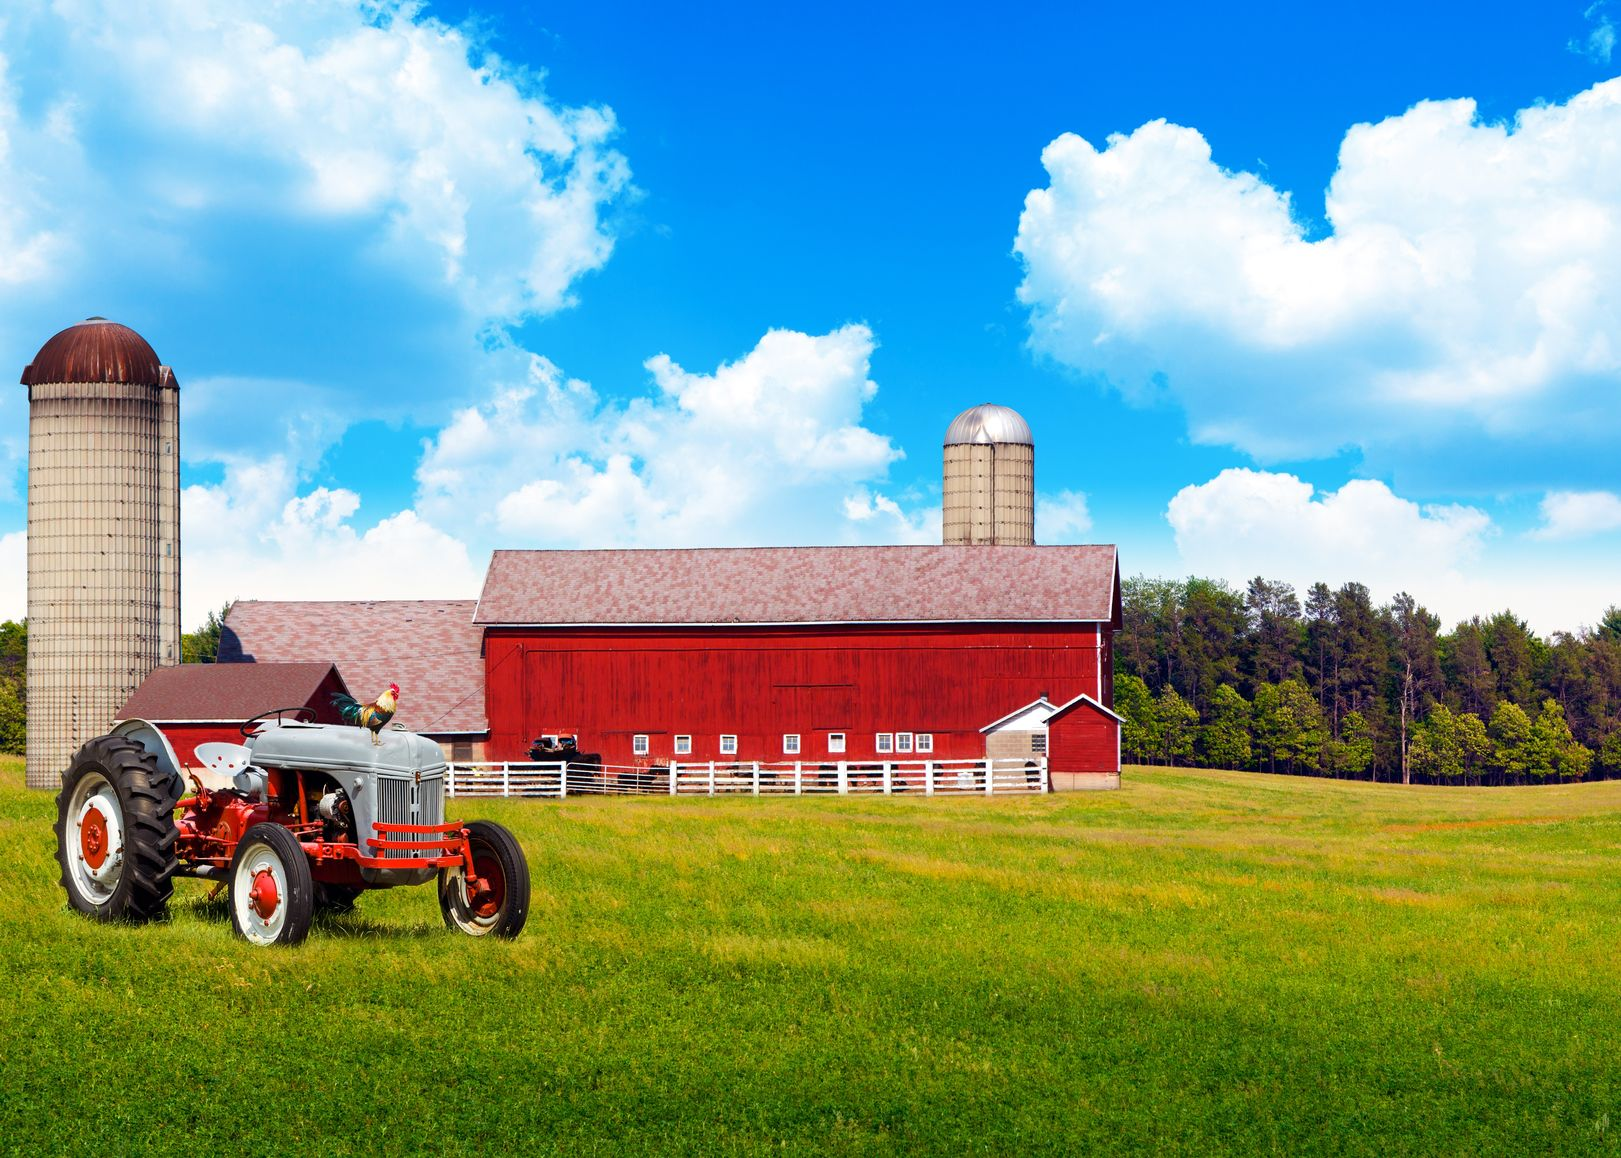 Lakewood, Lake Highlands, TX. Farm & Ranch Insurance